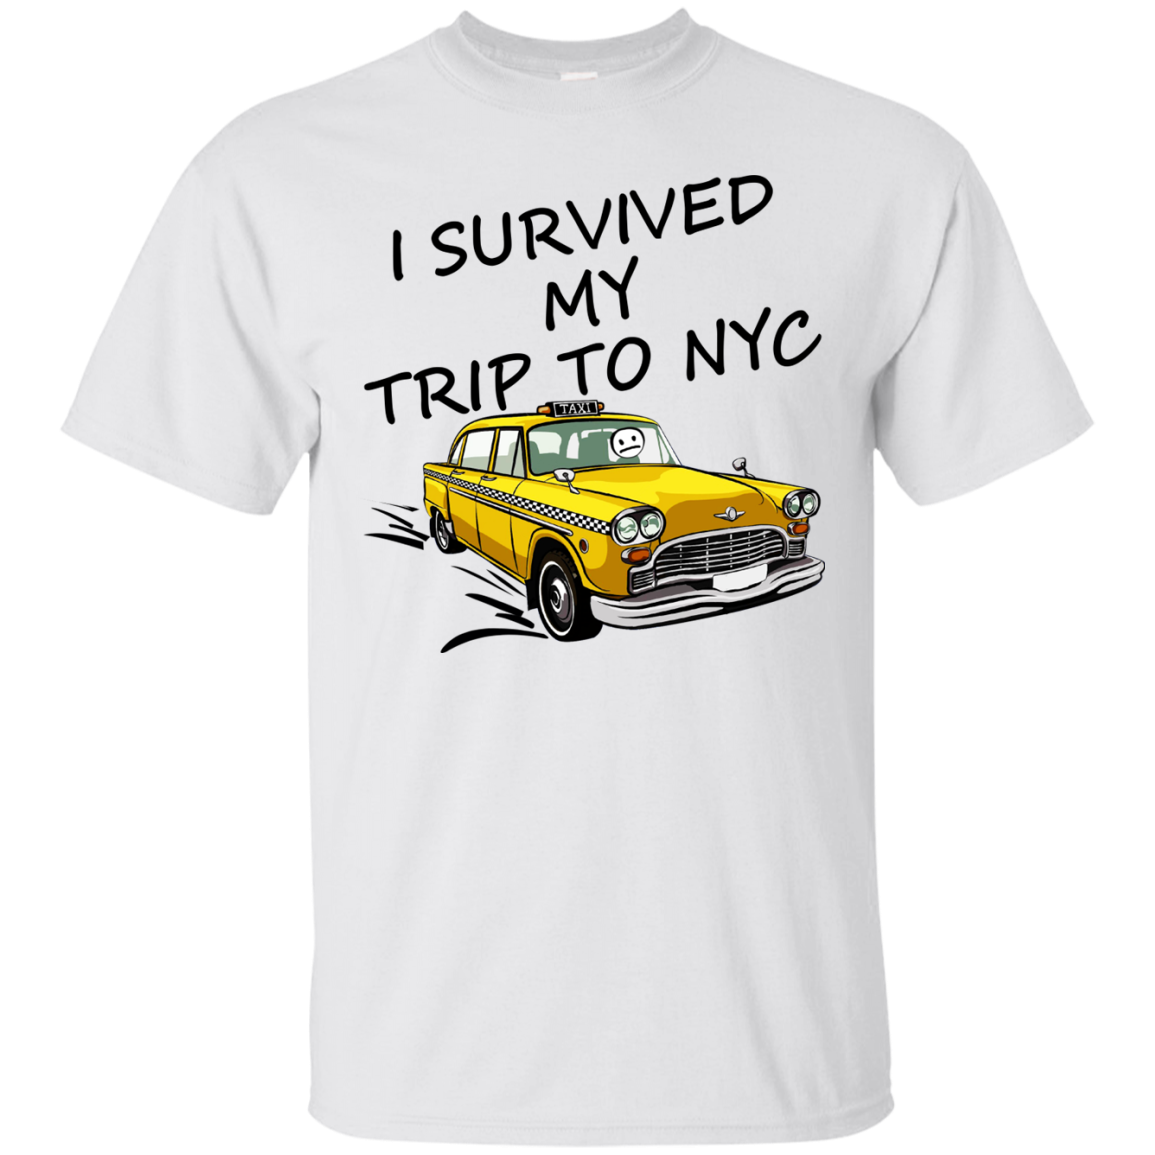 Spiderman  Homecoming - I Survived My Trip To NYC Shirt 400f45c87ca